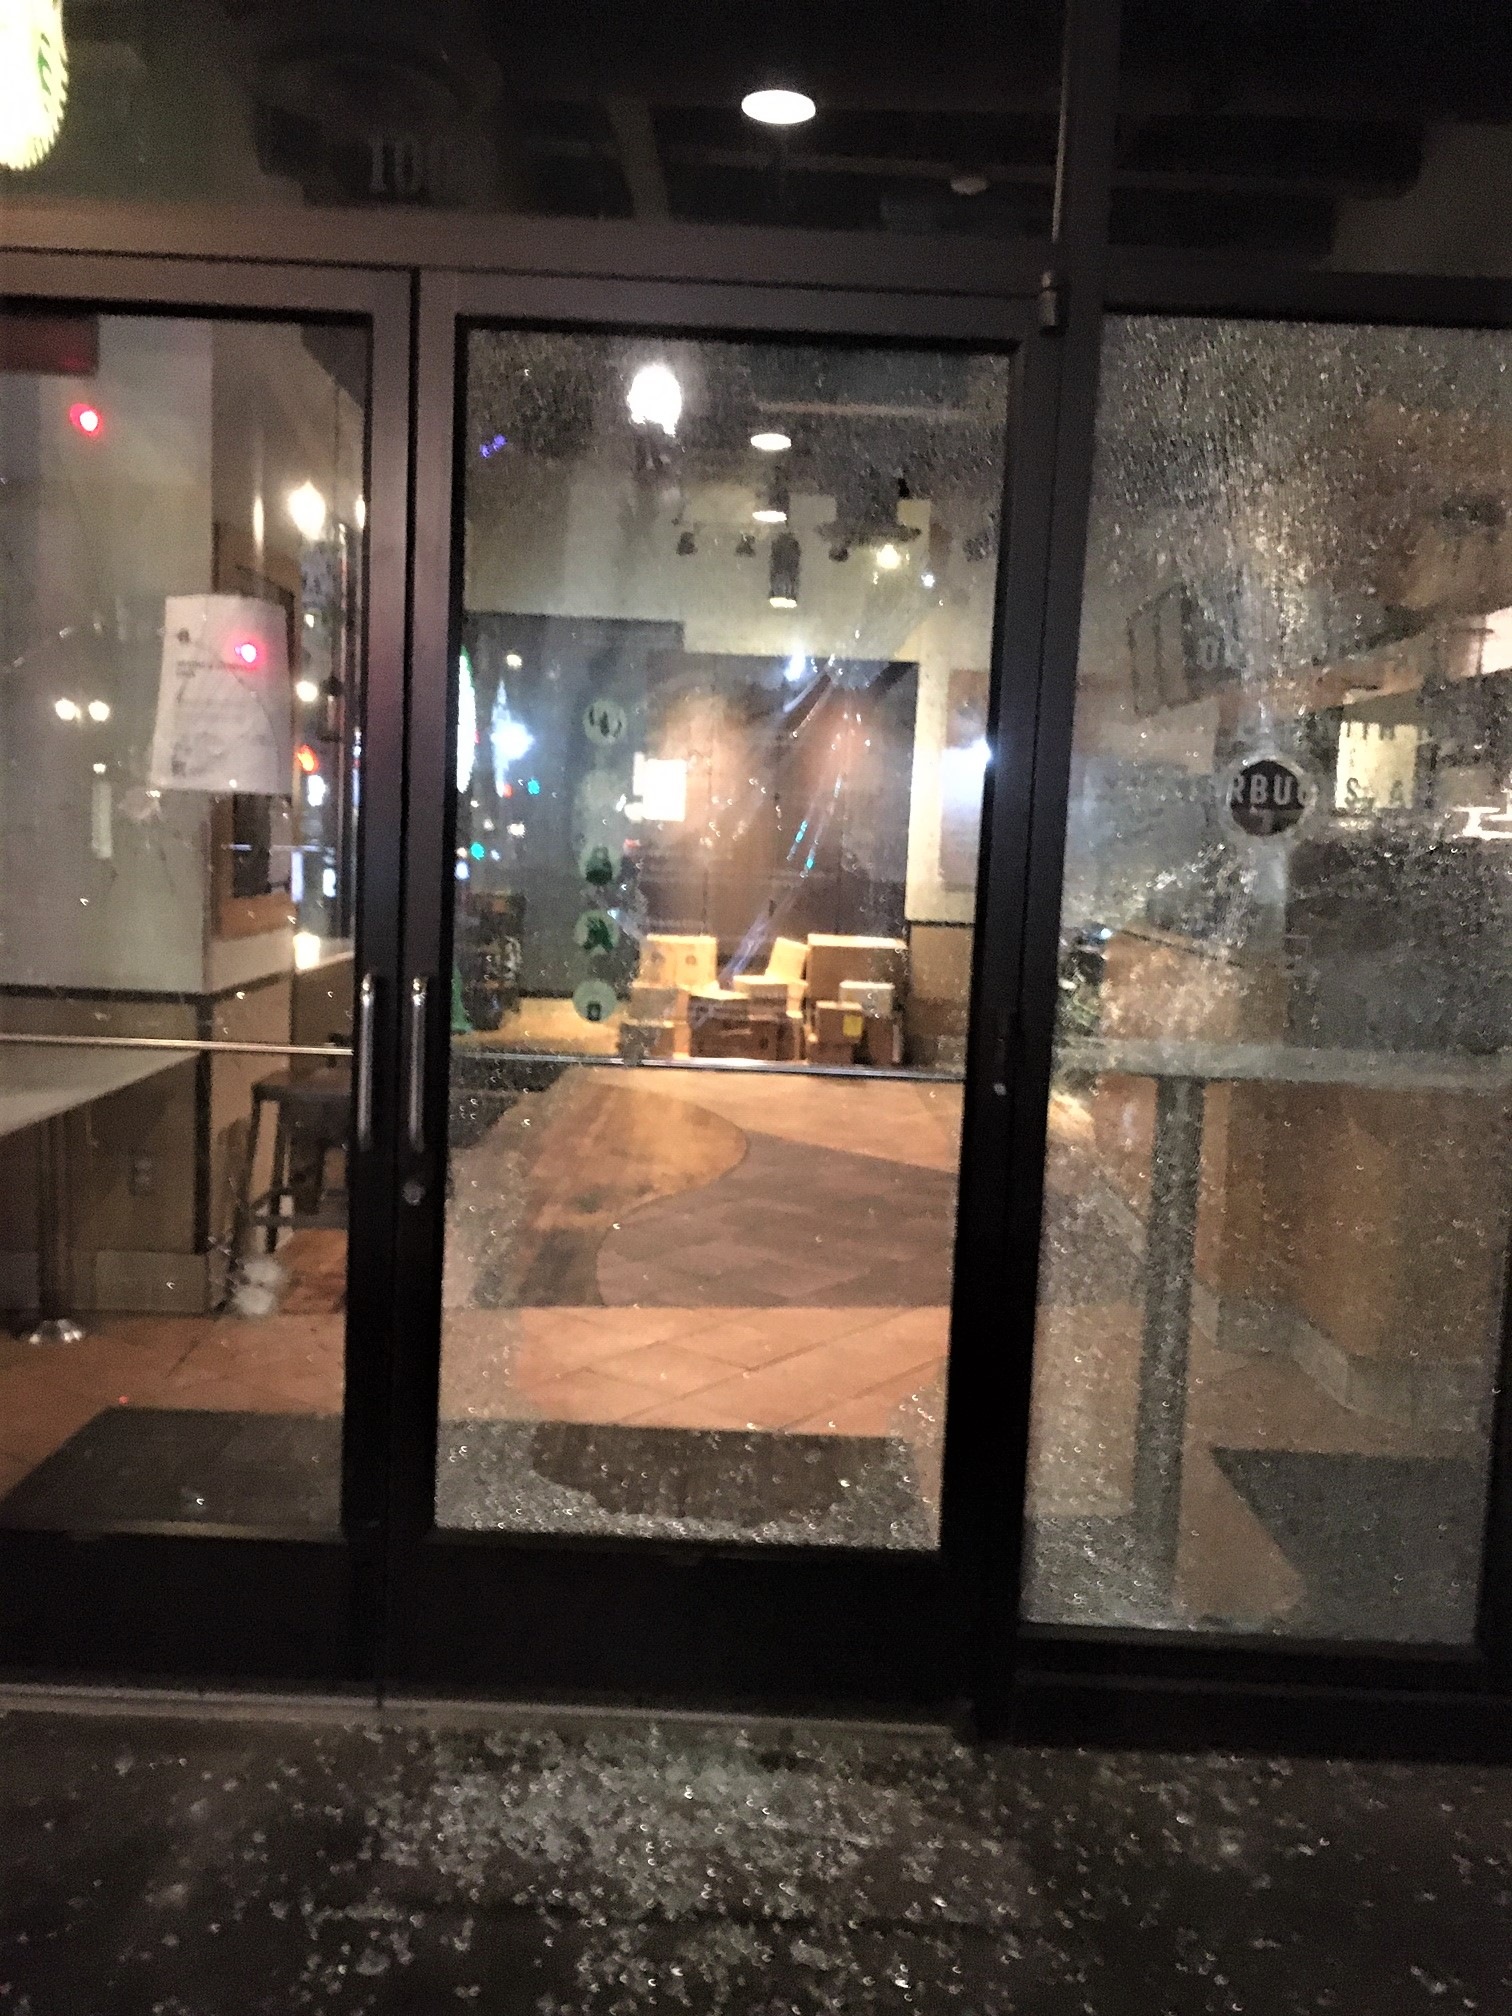 Windows of Starbucks Coffee broken during overnight protests in Portland on September 19, 2020 - Portland Police photo.